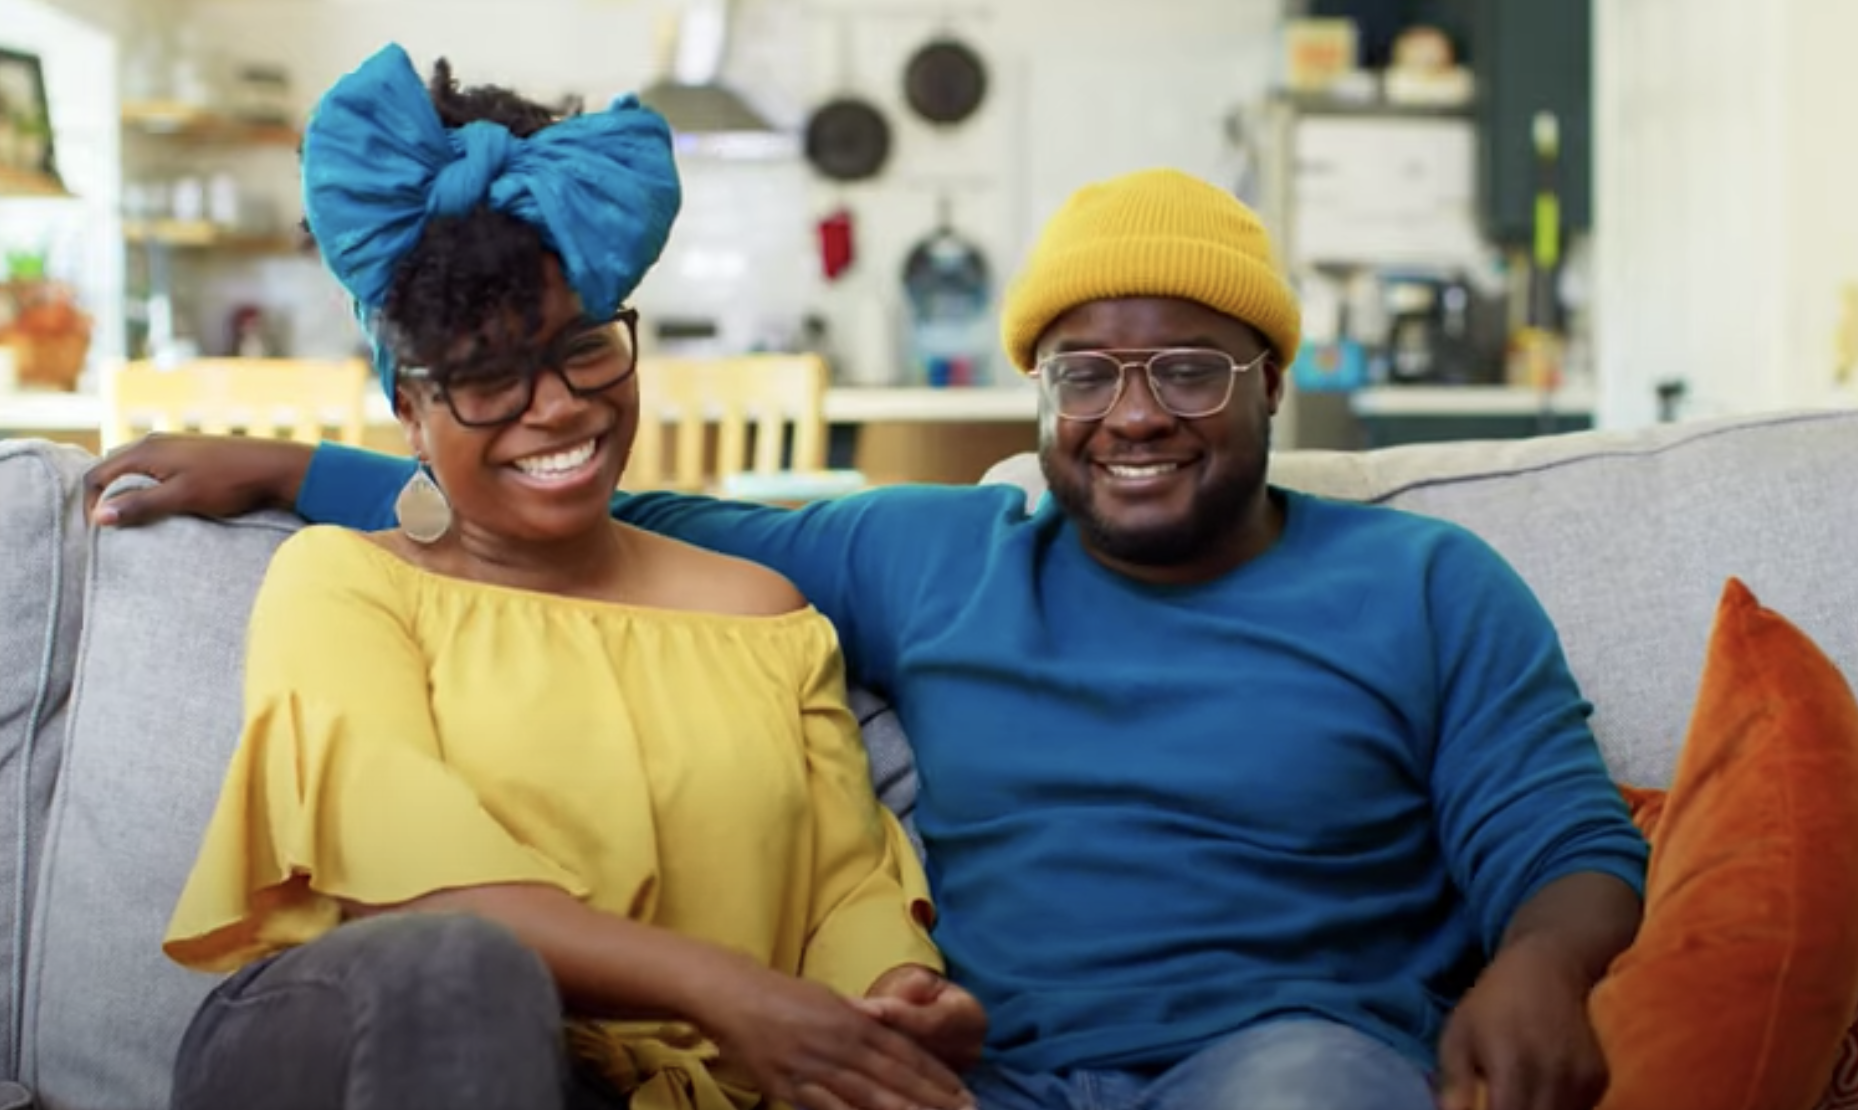 Exclusive: See The Official Season 4 Trailer For OWN Network's 'Black Love' Series